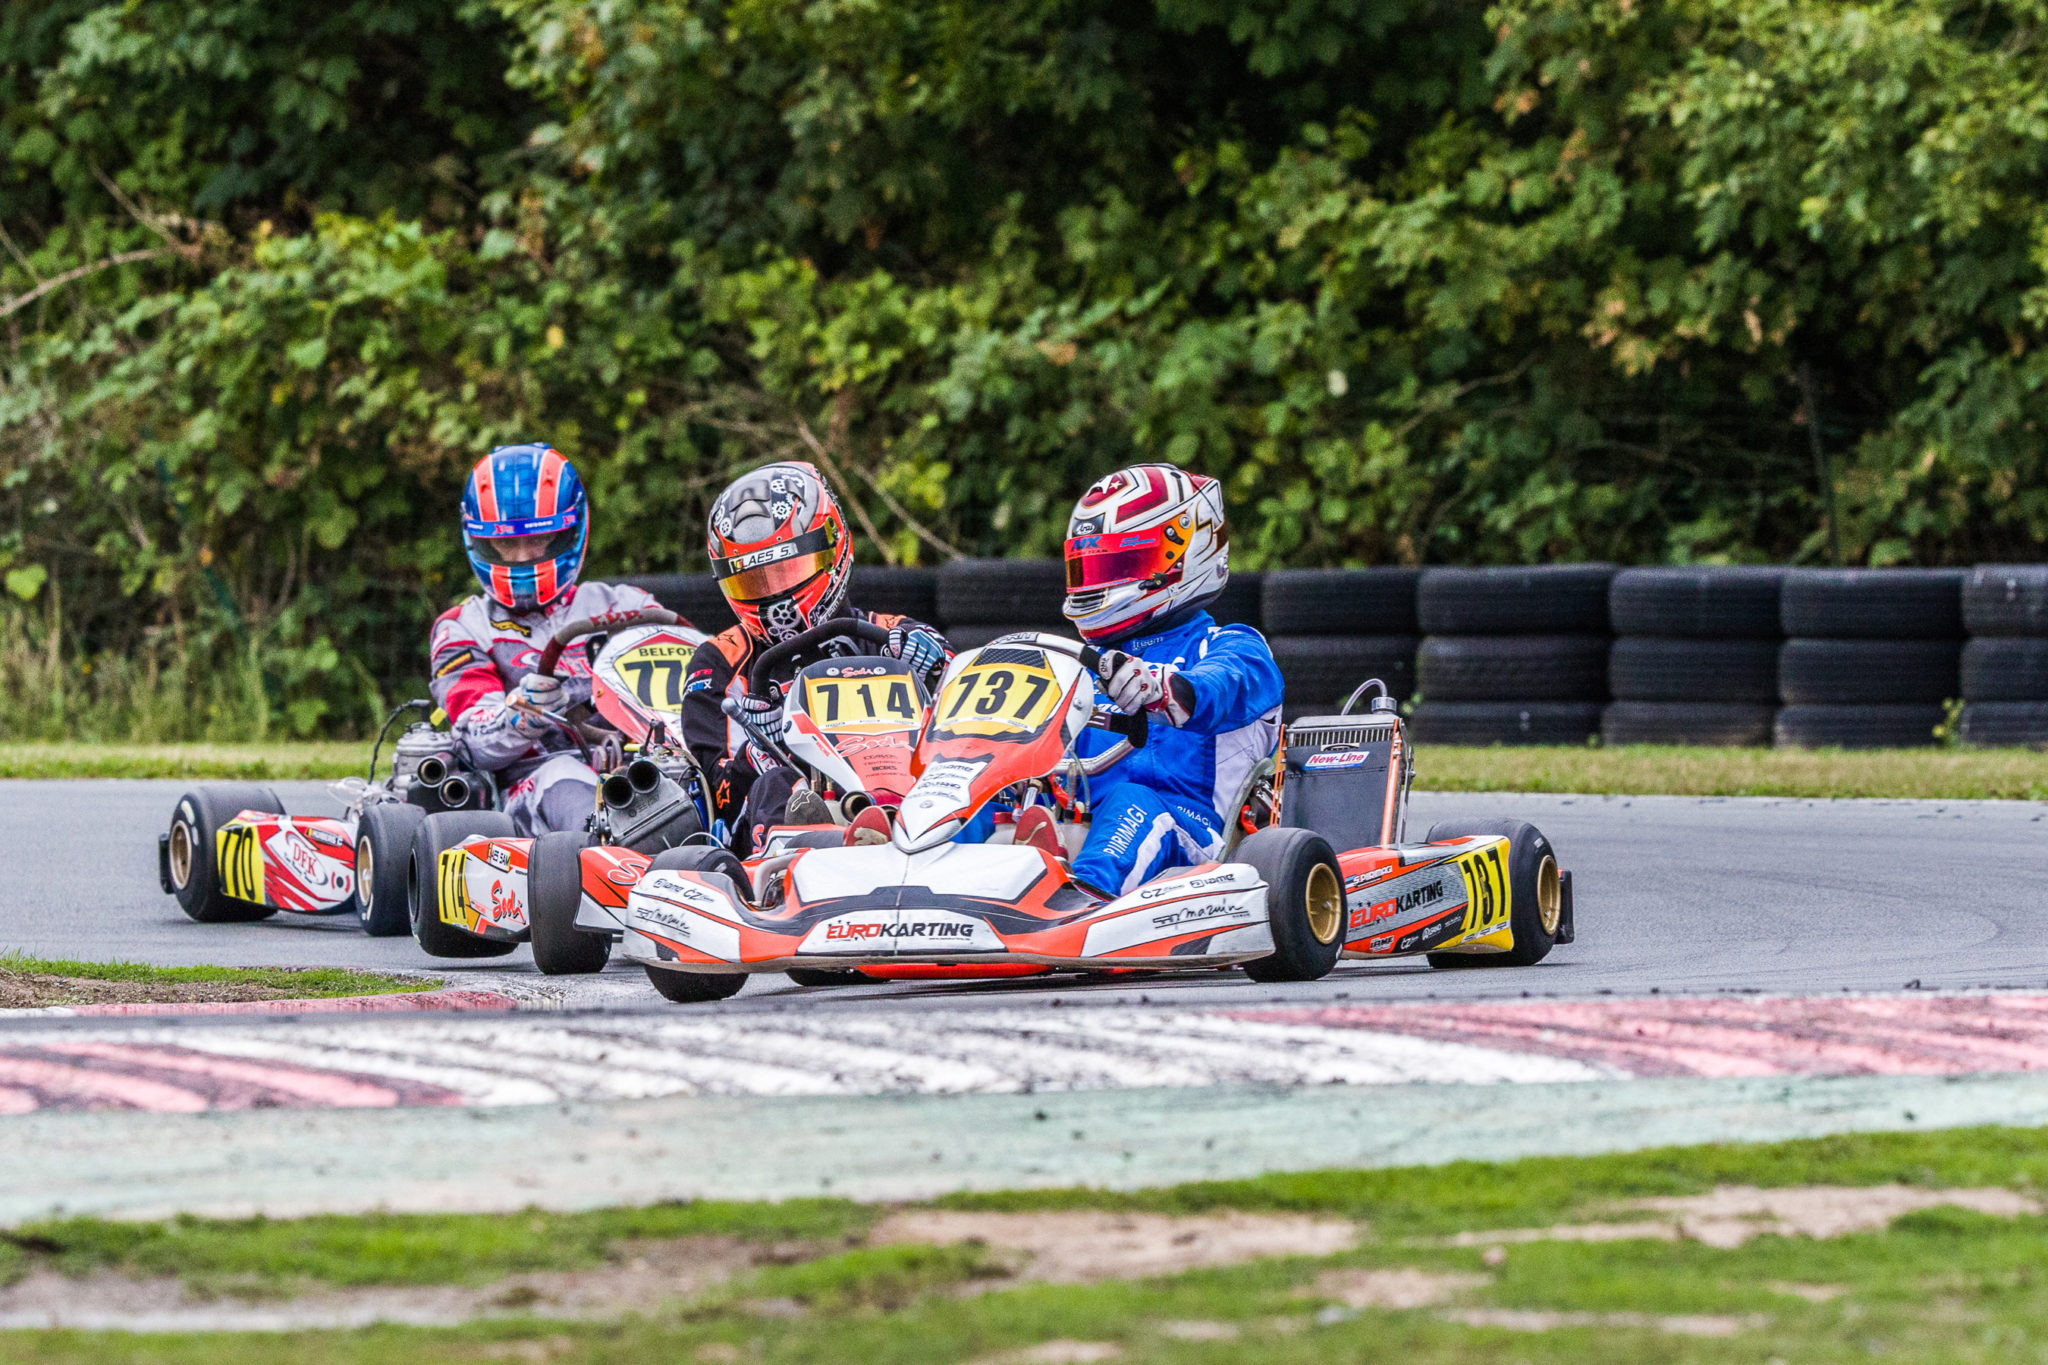 Hectic conclusion for The IAME Series Benelux